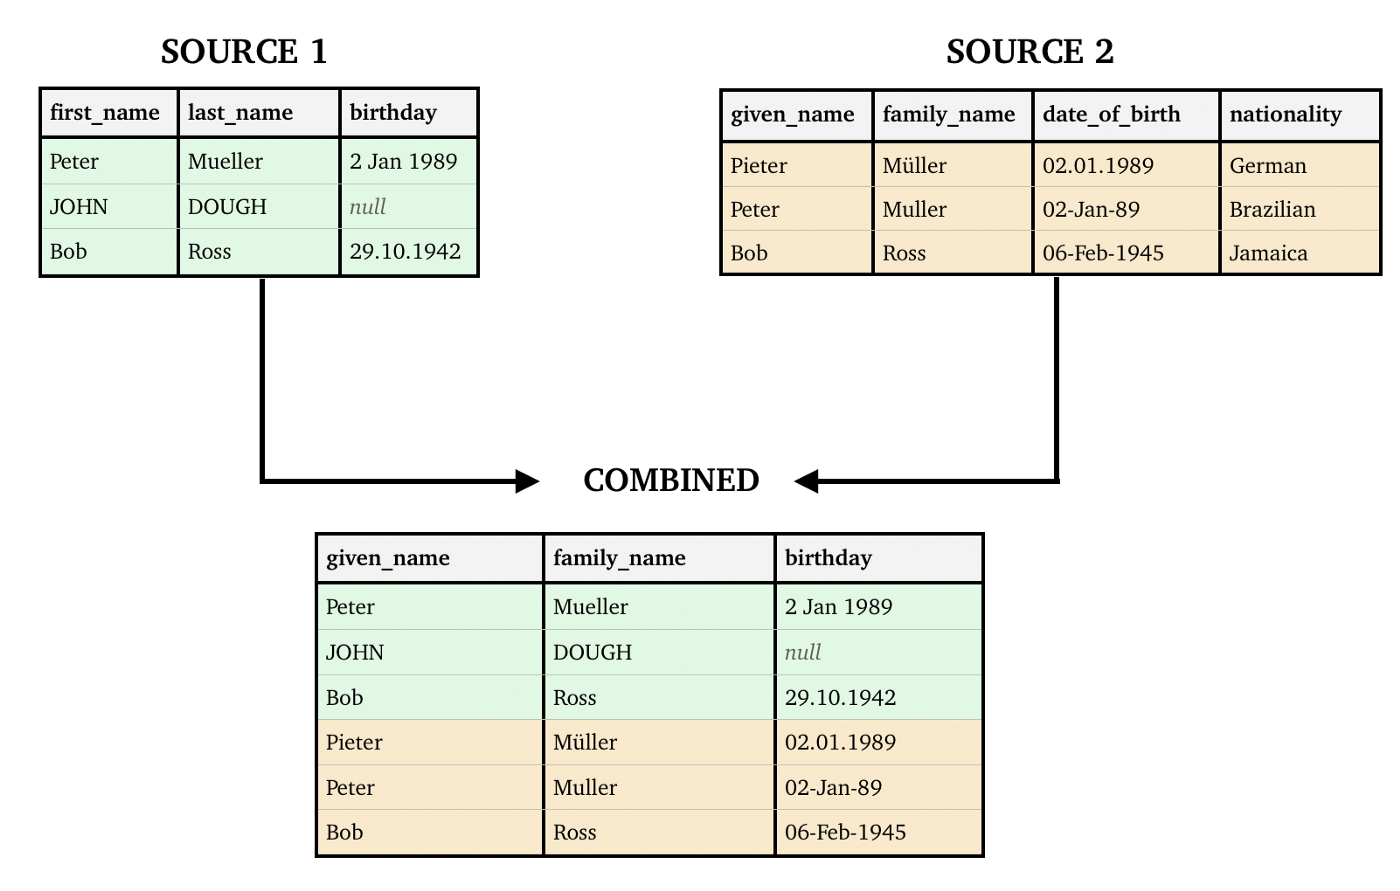 Combining multiple sources into a single schema